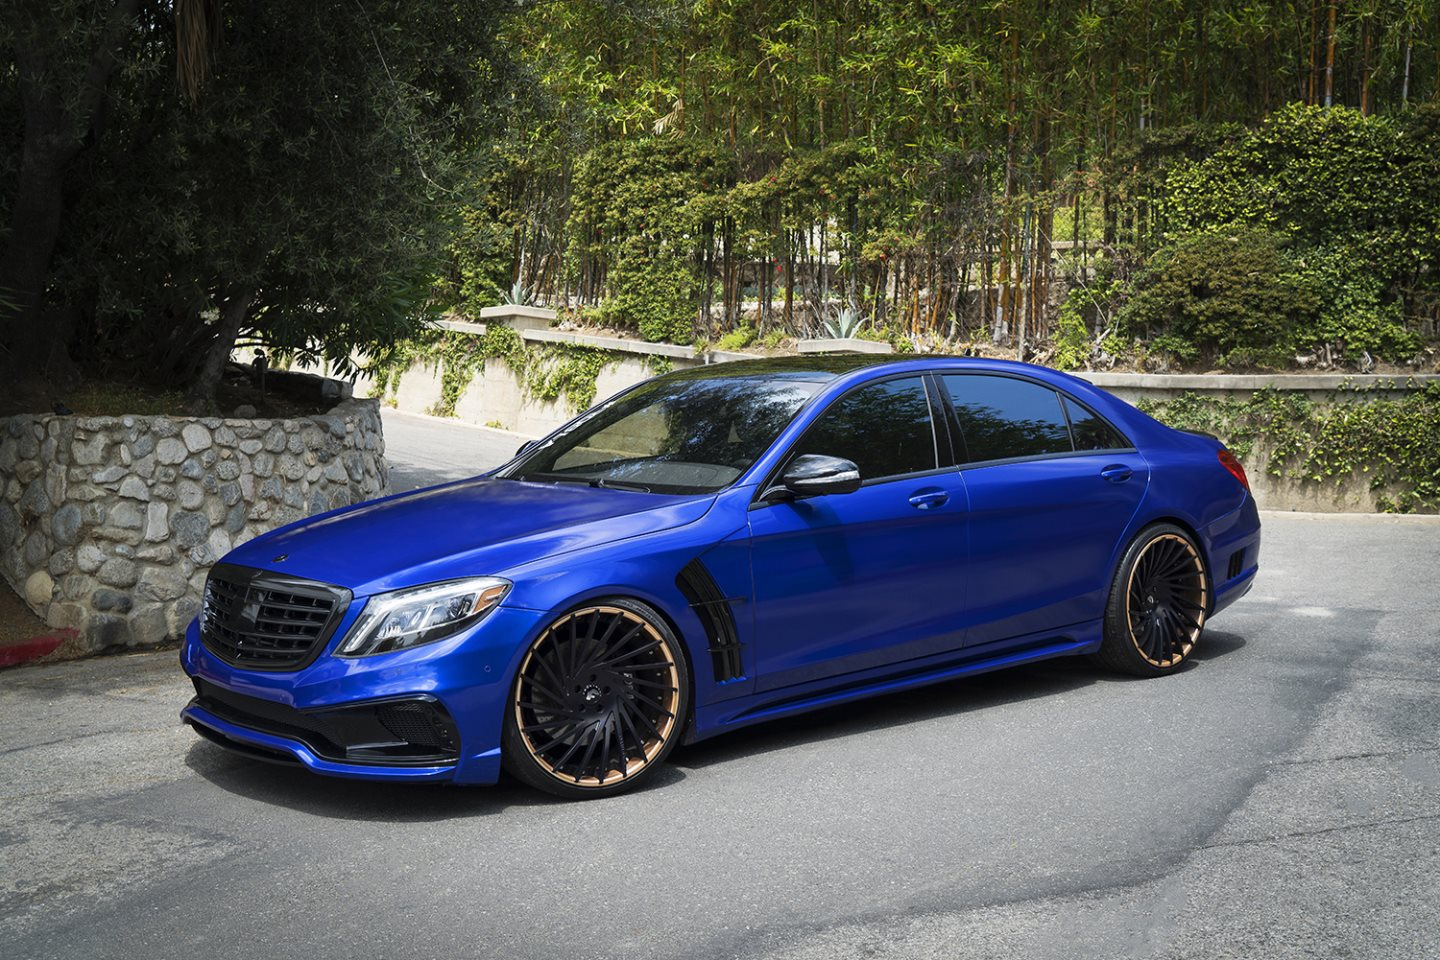 Black bison edition tuning package for the w204 mercedes benz c class - Mercedes Benz W222 On Forgiato Ventoso Wheels Black Bison Body Kit